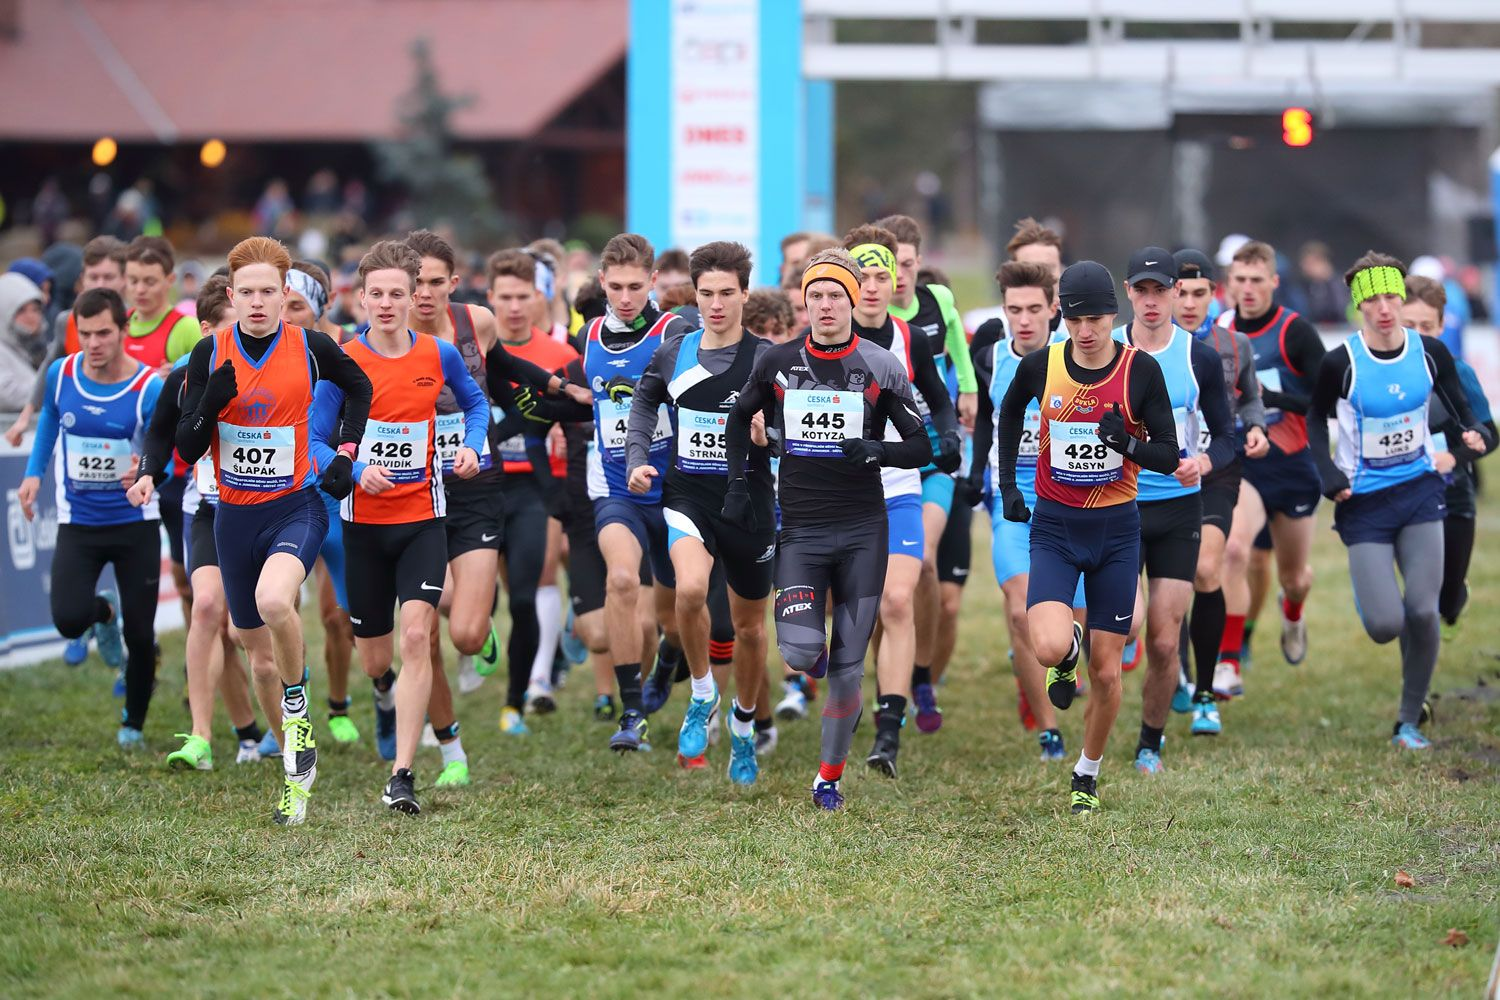 CZ Championship Cross Country Dritec 31